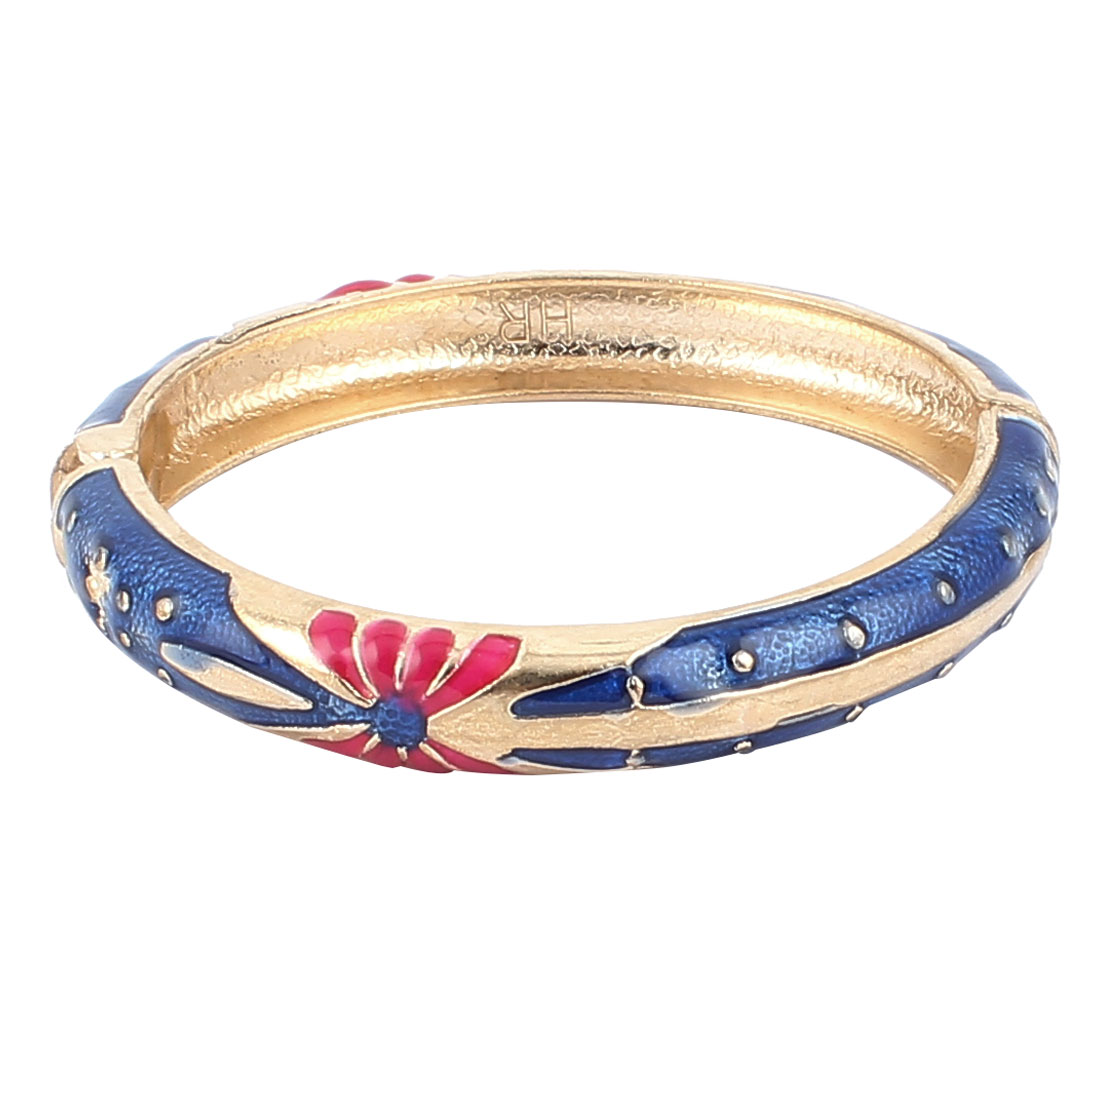 Lady Spring Hinged Round Cuff Butterfly Pattern Enamel Bracelet Bangle Royal Blue